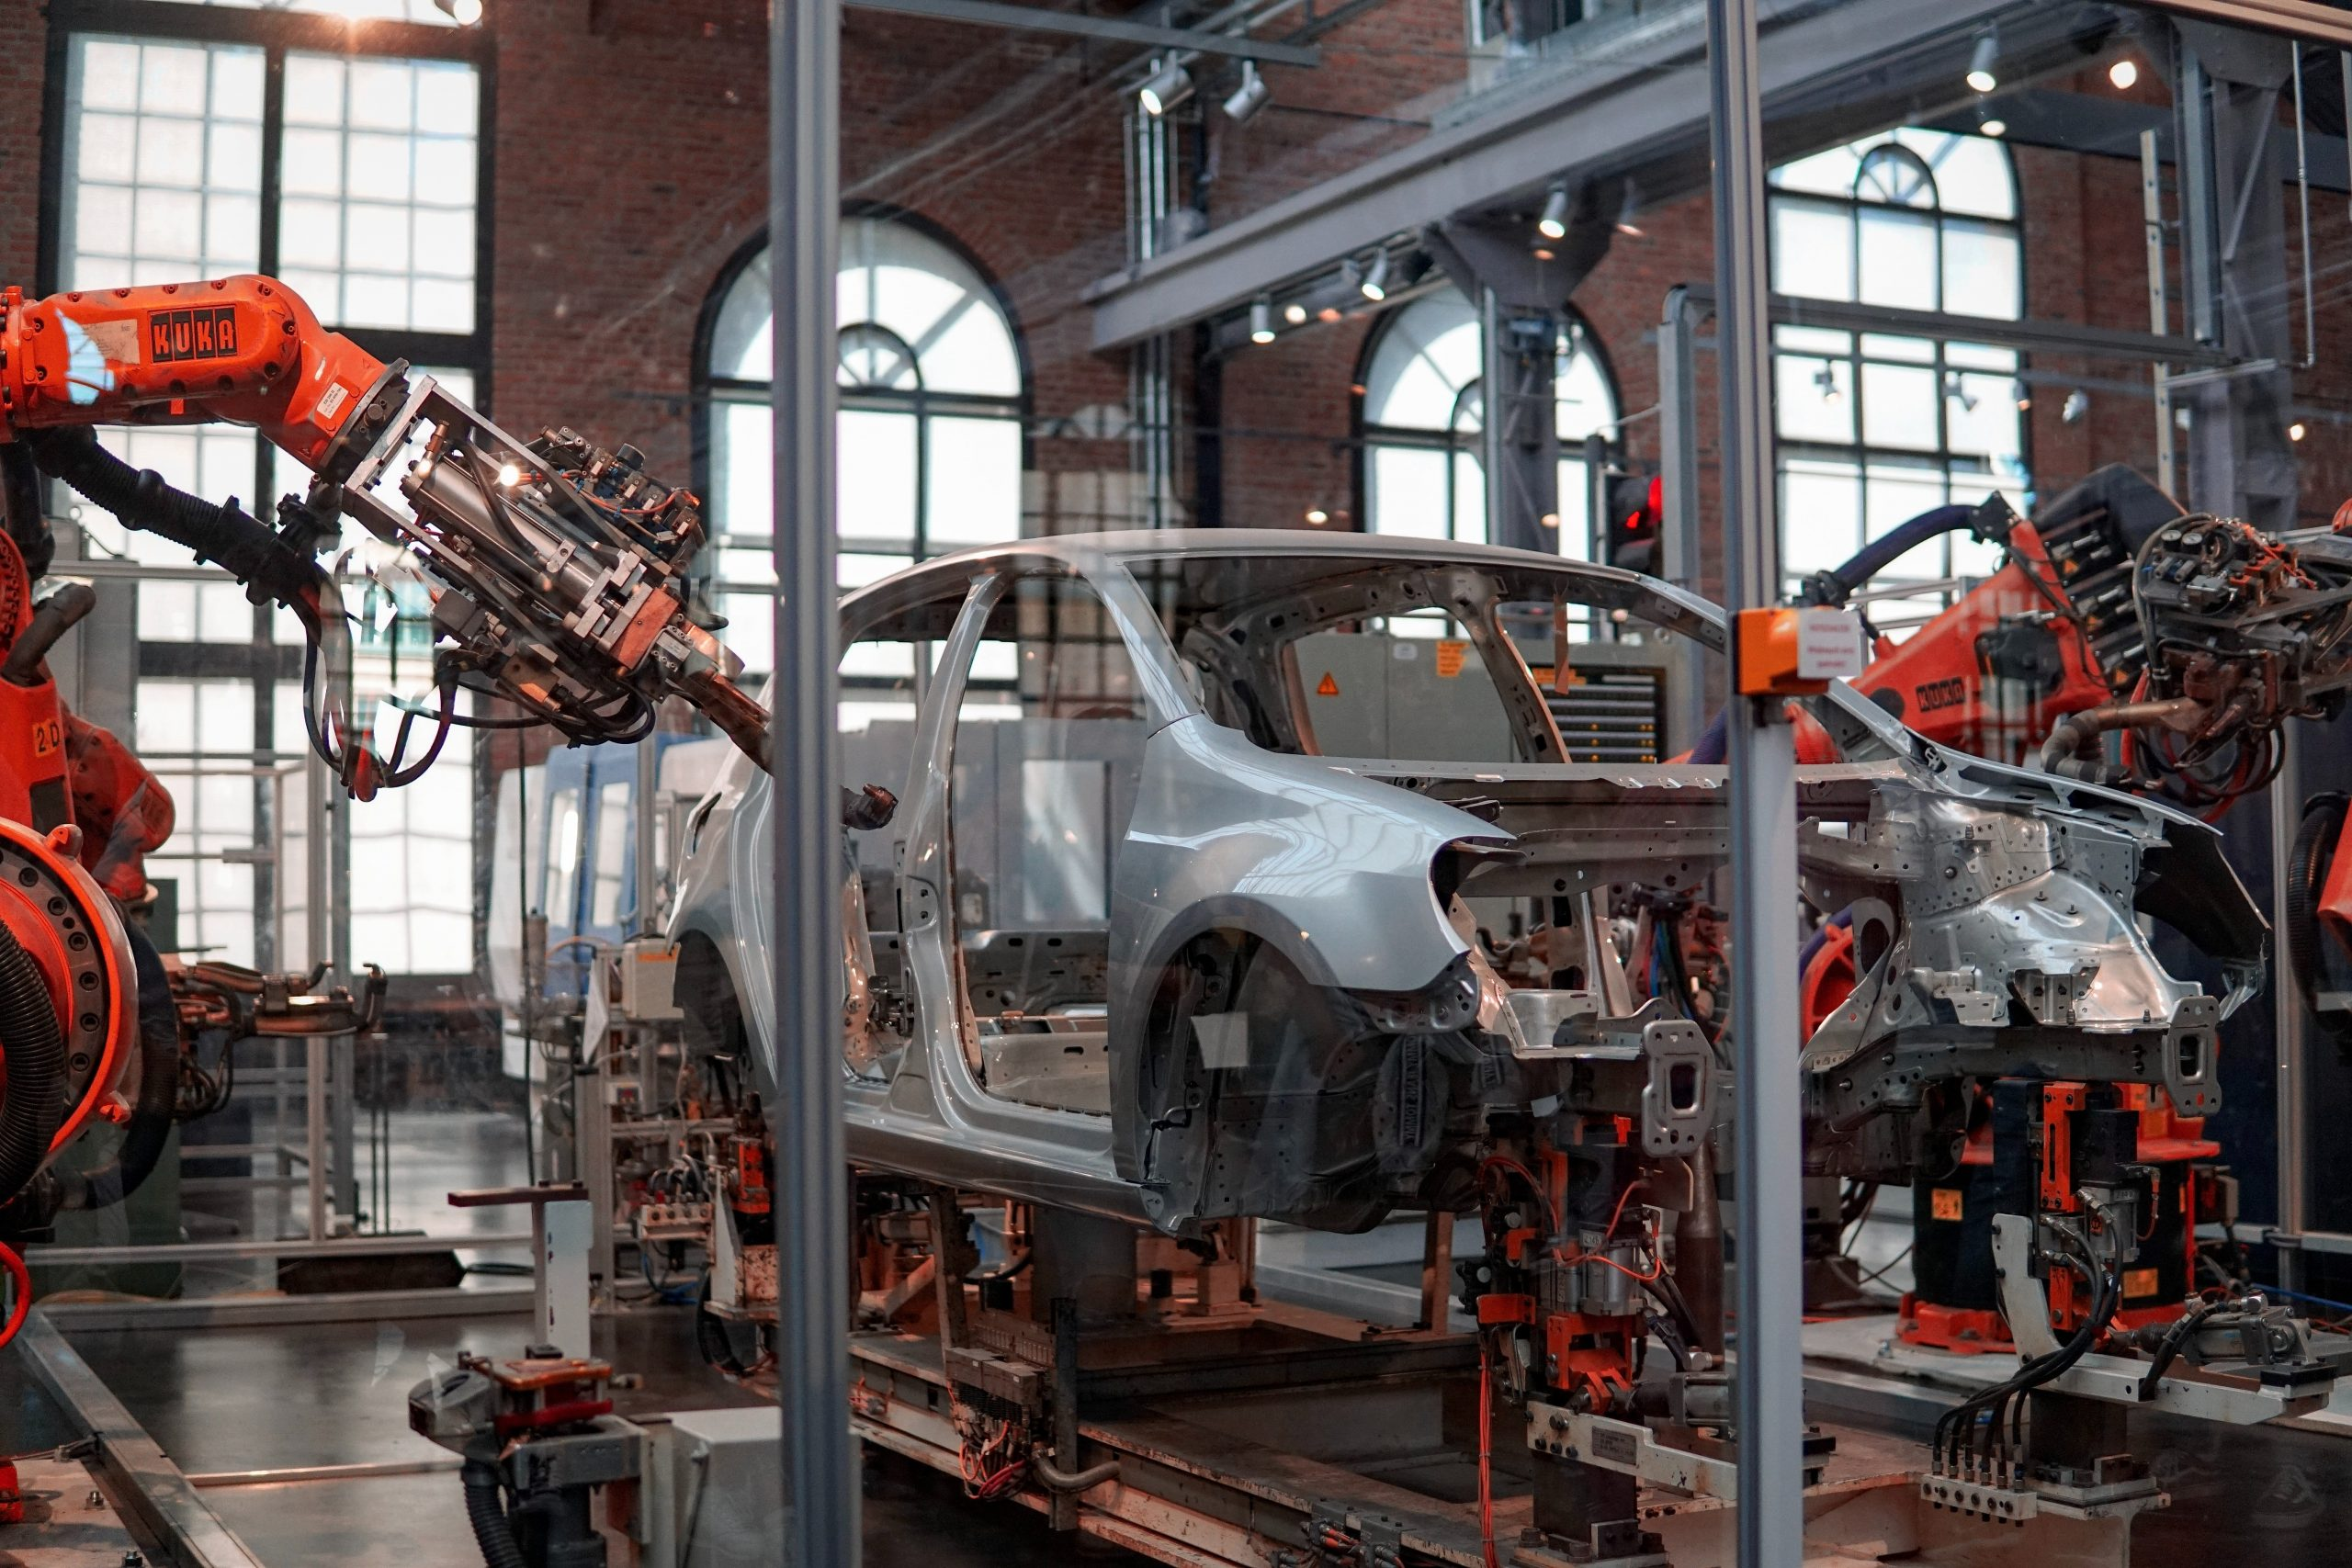 A decorative image of an automotive vehicle being worked on.